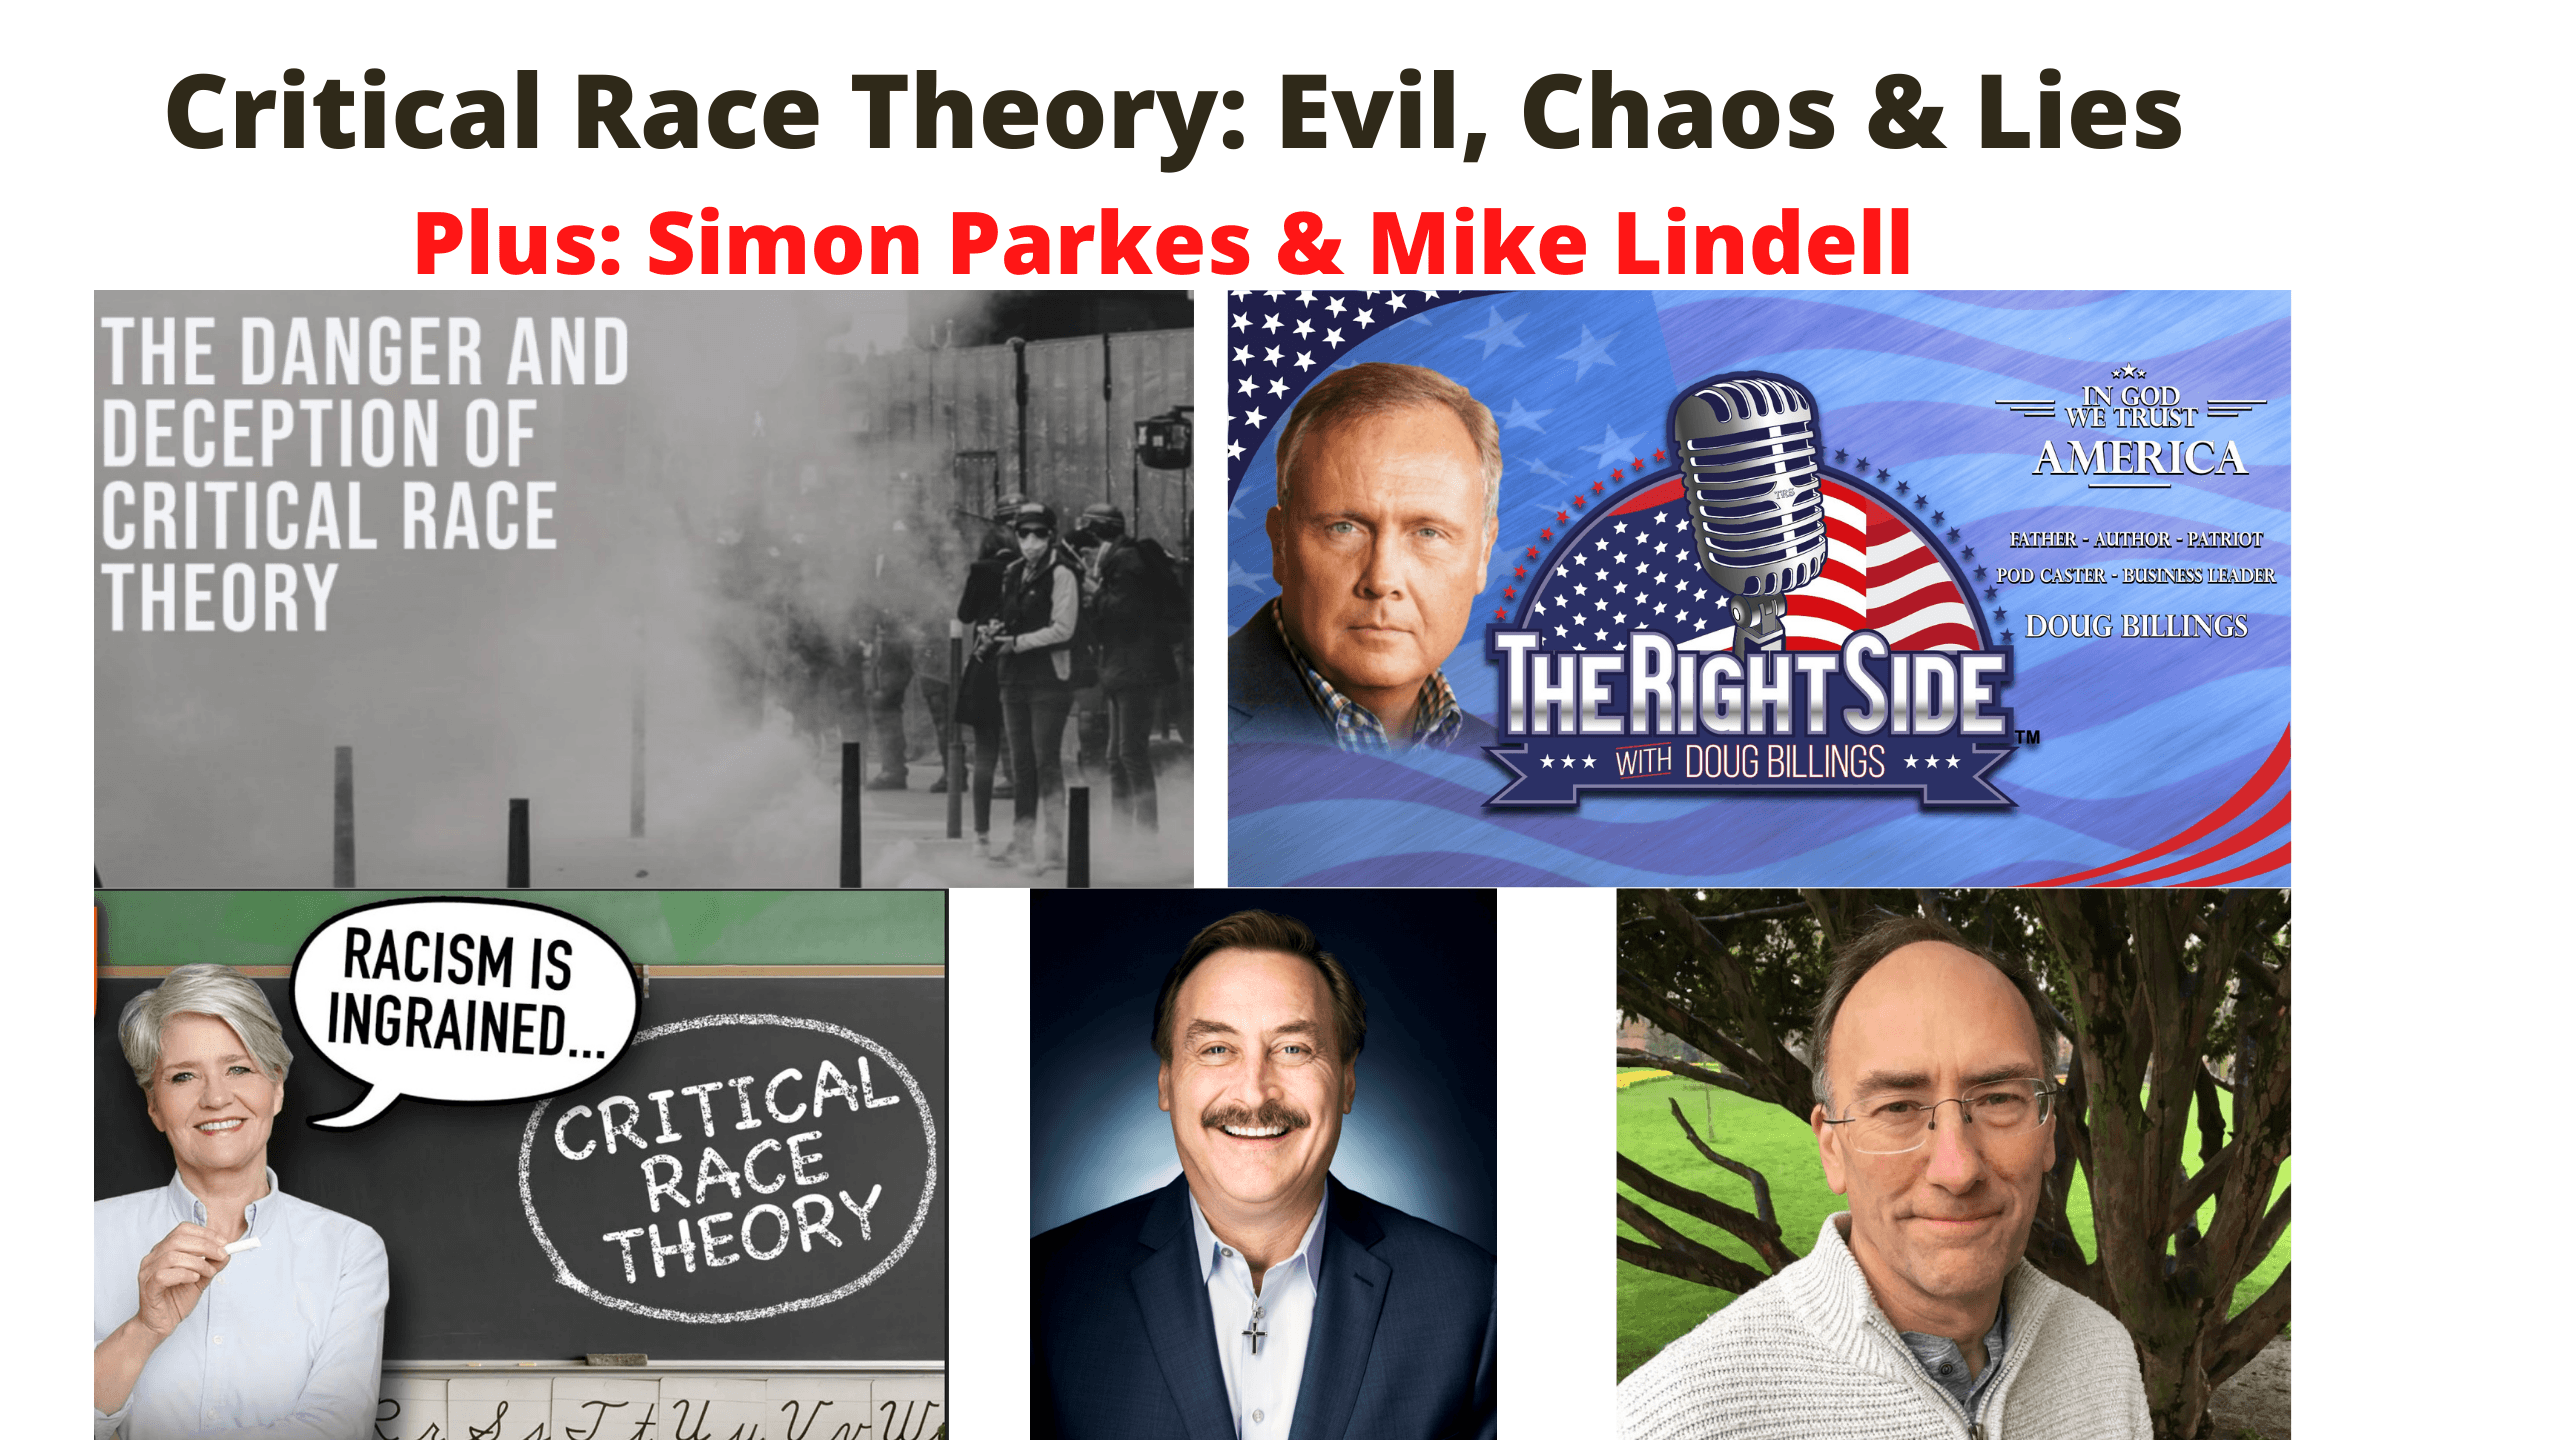 CompressedCritical Race Theory plus Lindell & Parkes